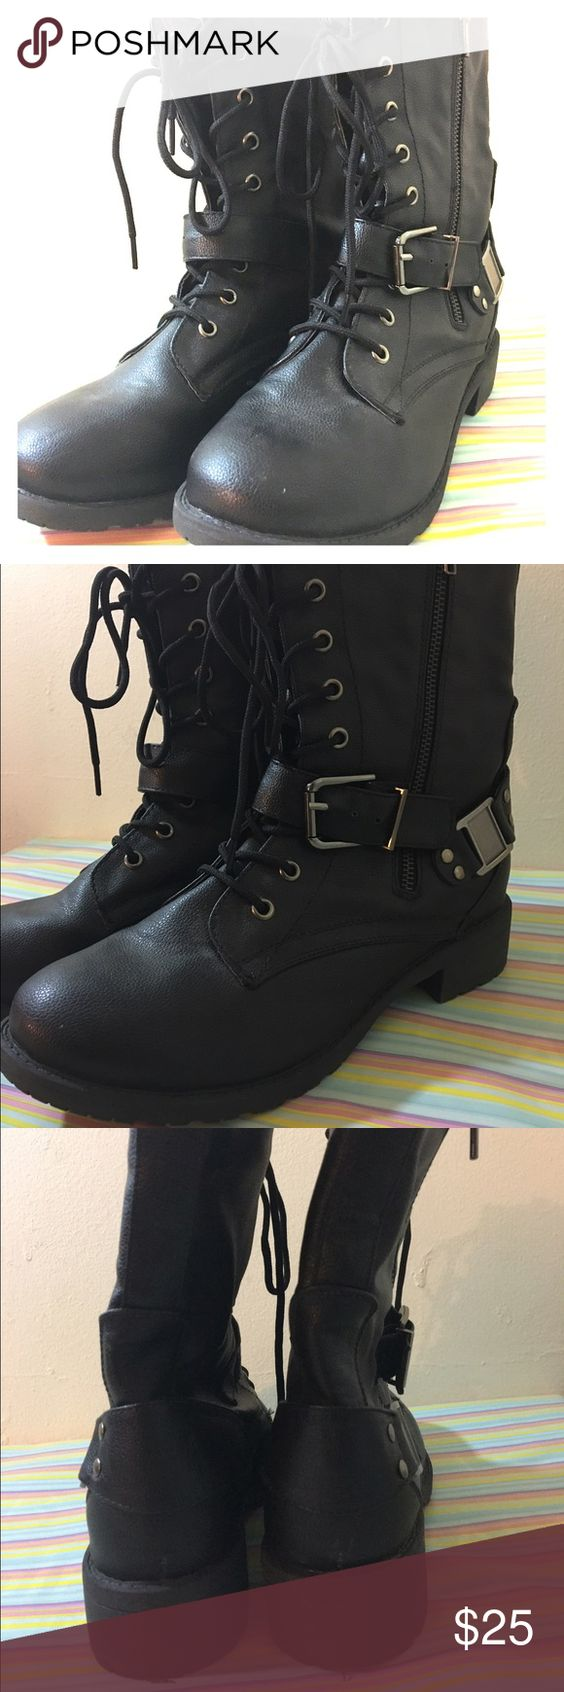 Black Combat Buckle Tie up Boots NWT